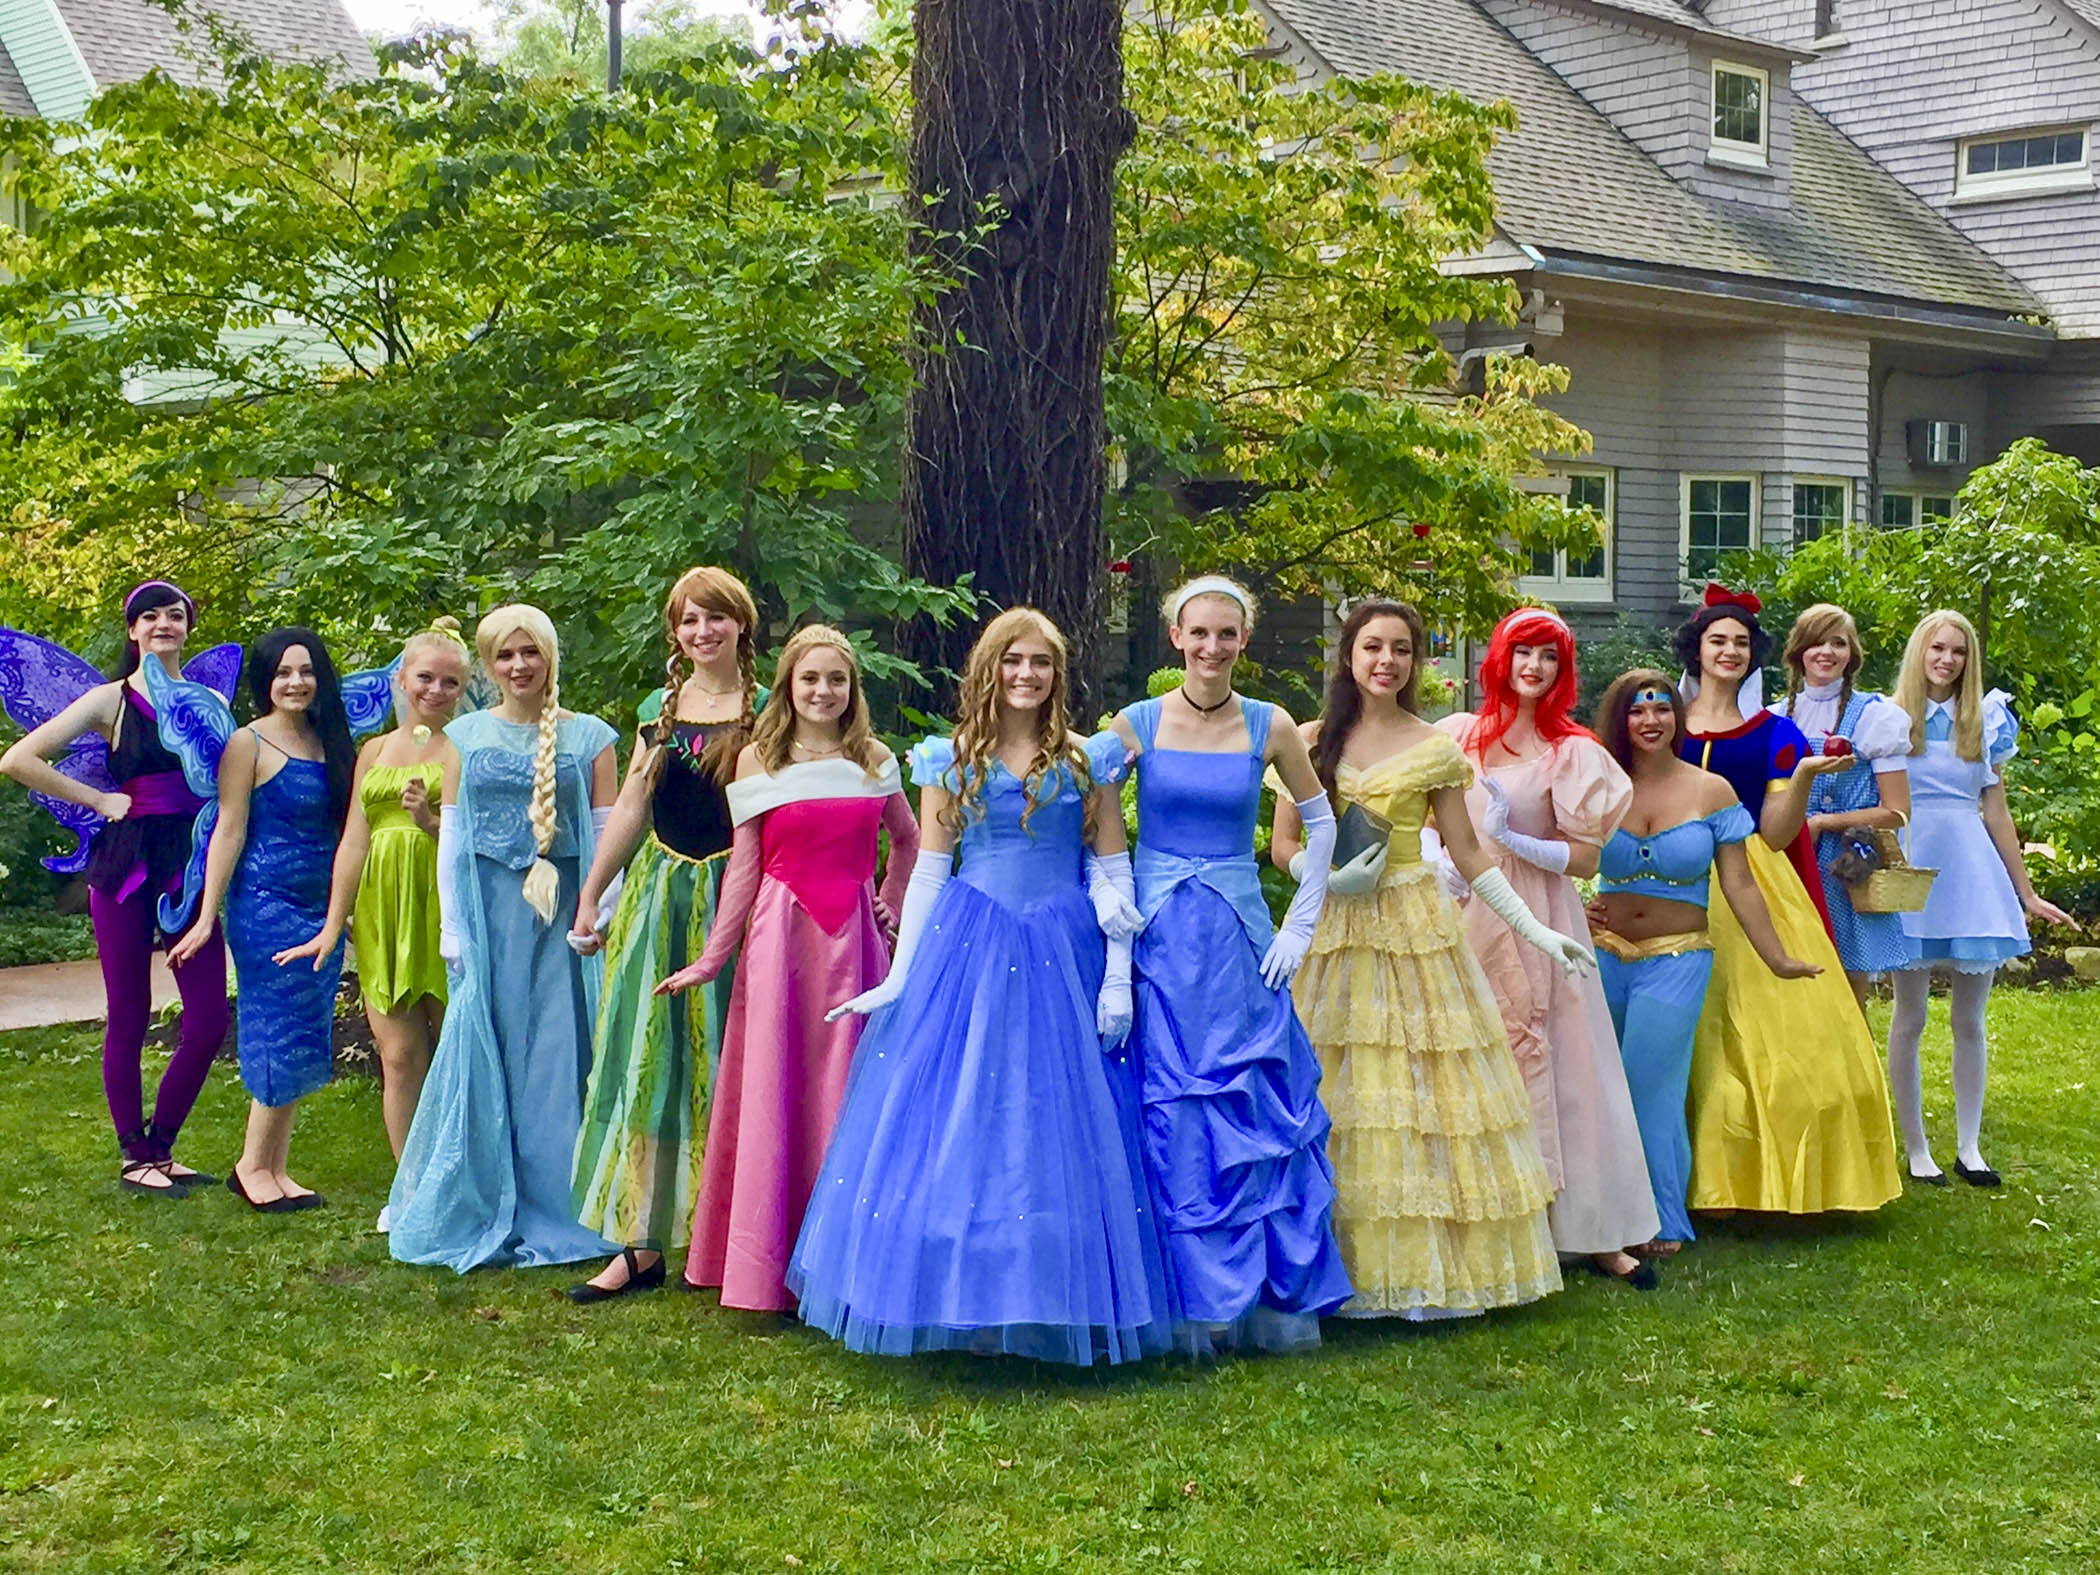 7a6e56612f6 The Fairytale Foundation Princesses will be stopping by this year s  homecoming pancake breakfast on Sunday